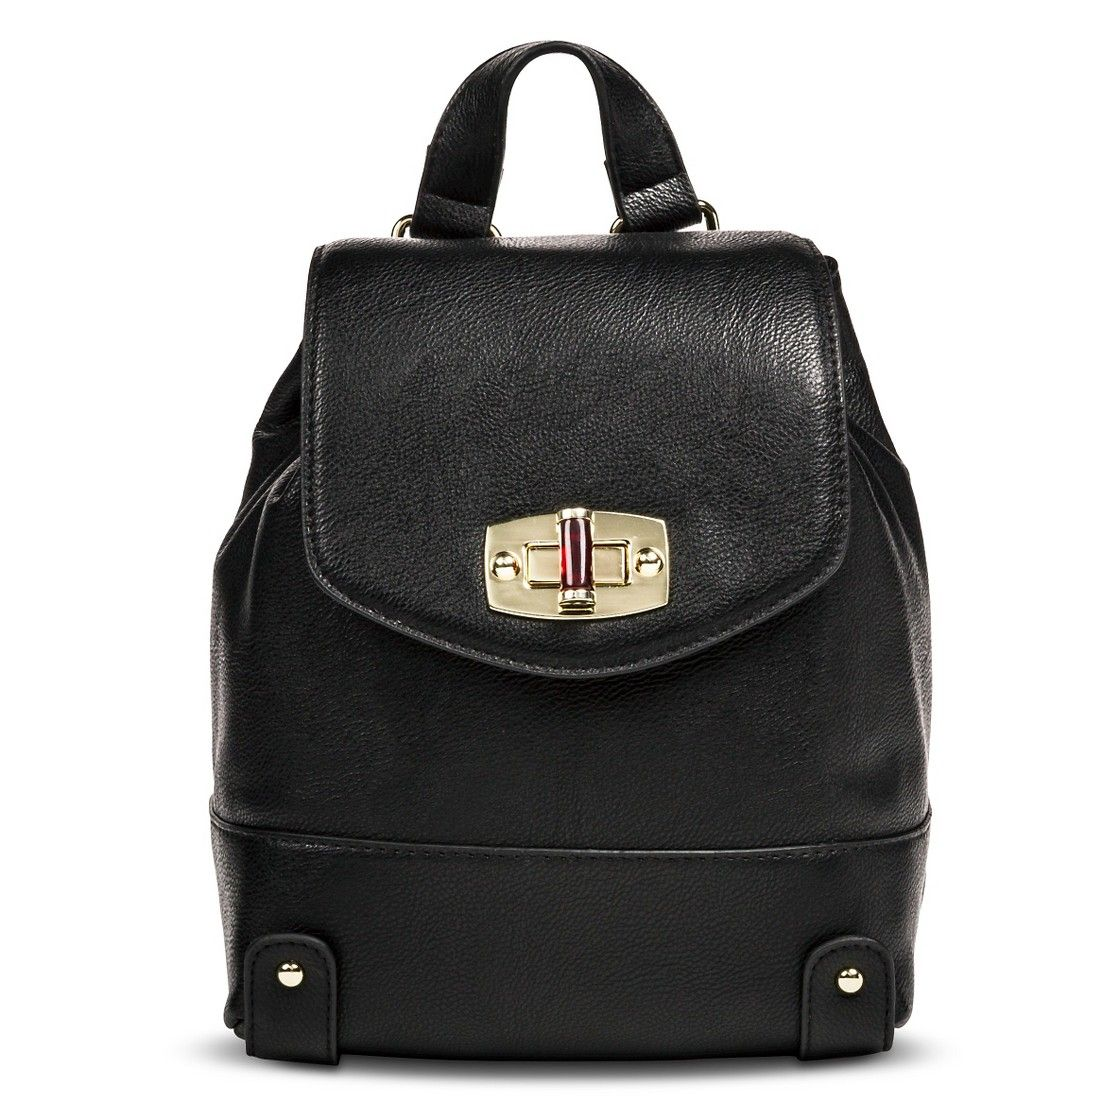 Women's Mini Backpack Handbag | My handbags | Pinterest | Handbags ...